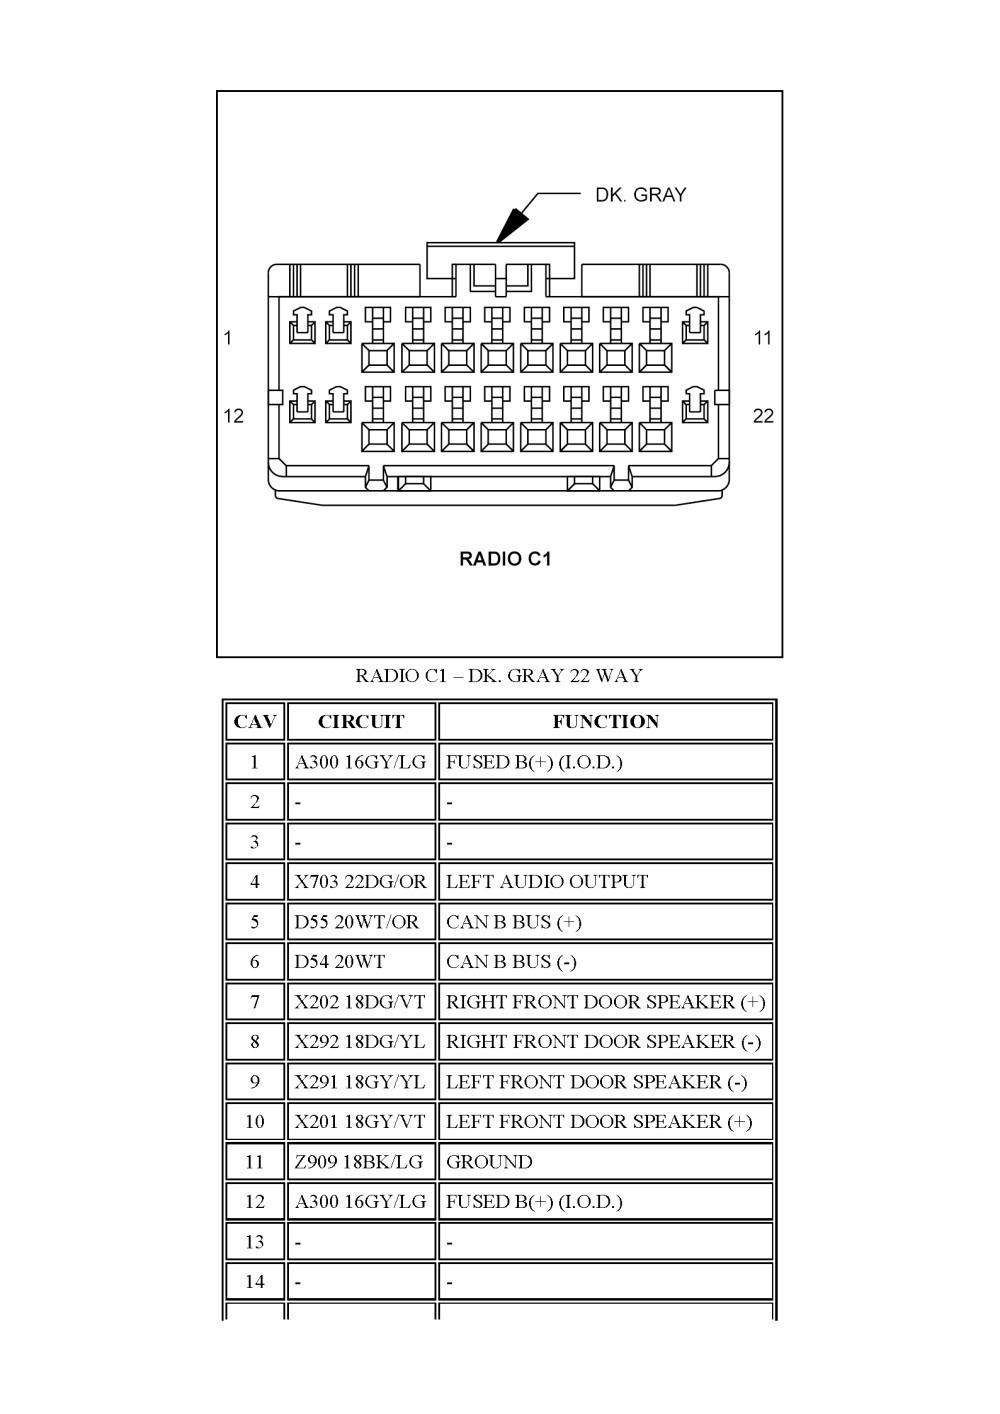 2006 Jeep Commander Radio Wiring Diagram from lh3.googleusercontent.com